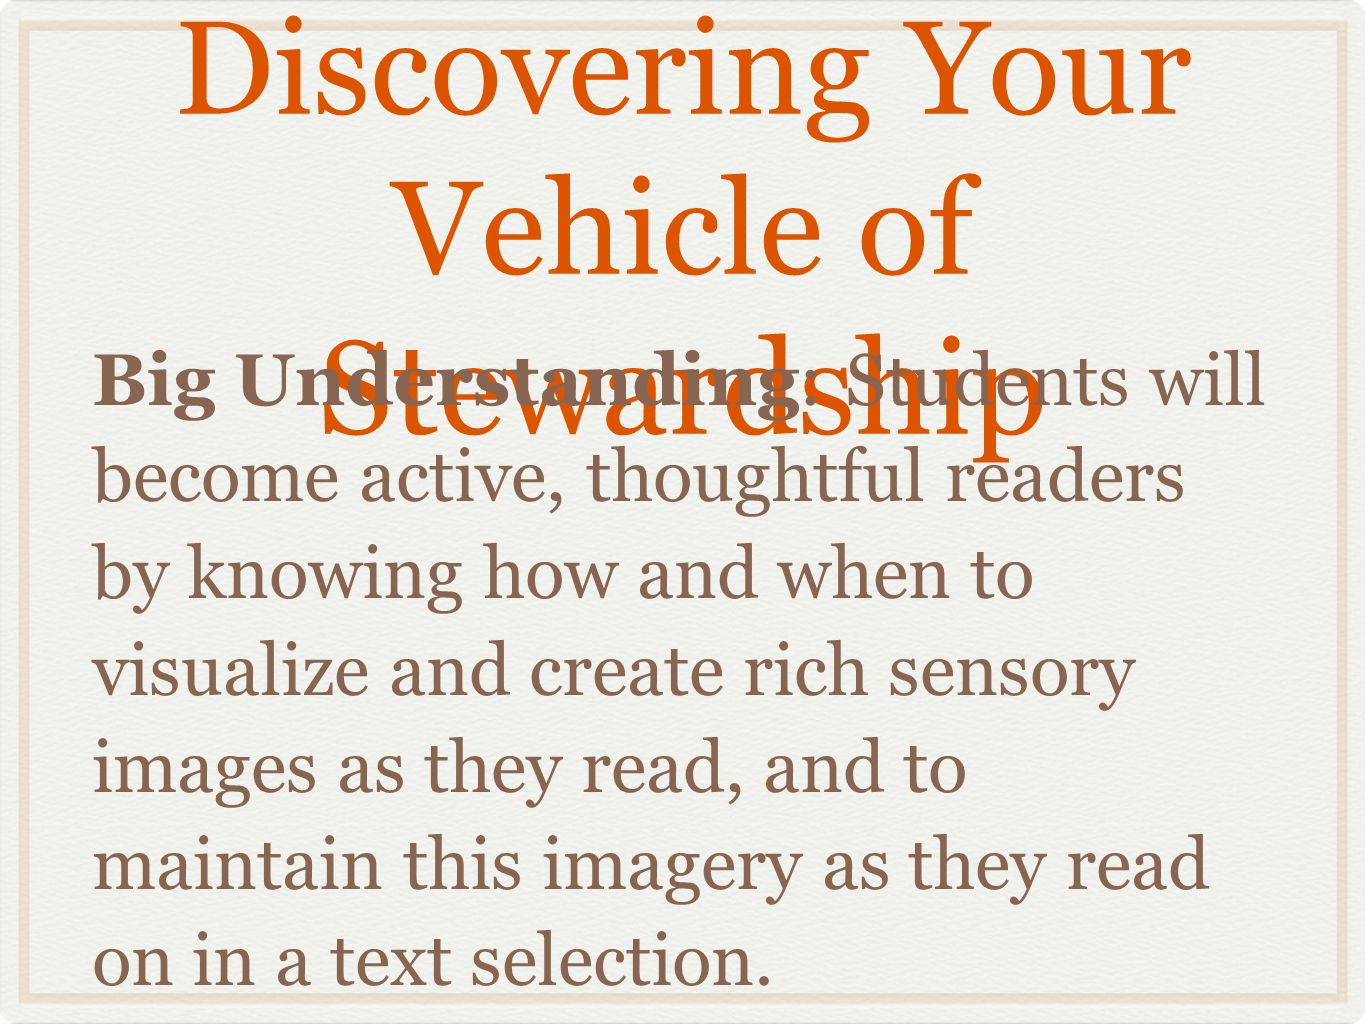 Big Understanding: Students will become active, thoughtful readers by knowing how and when to visualize and create rich sensory images as they read, a